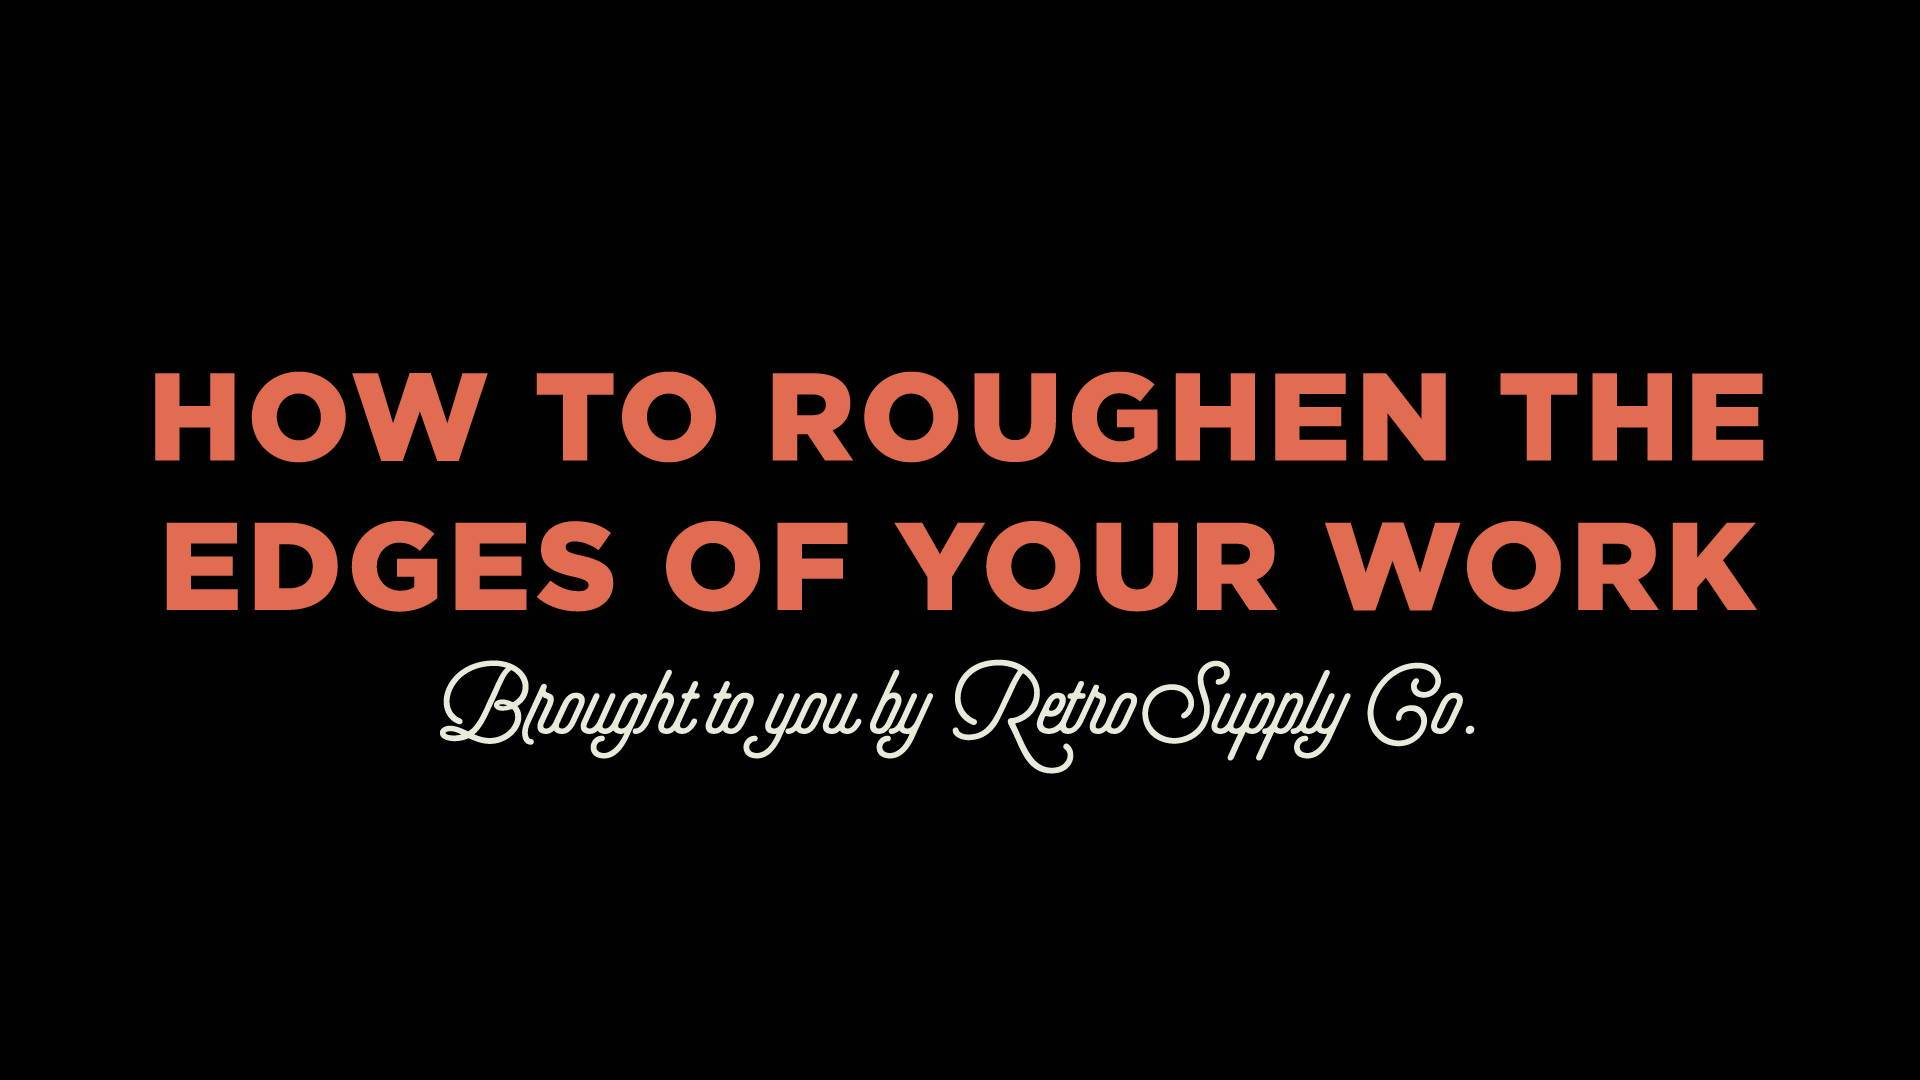 Here's a Quick Way to Roughen the Edges of Your Work